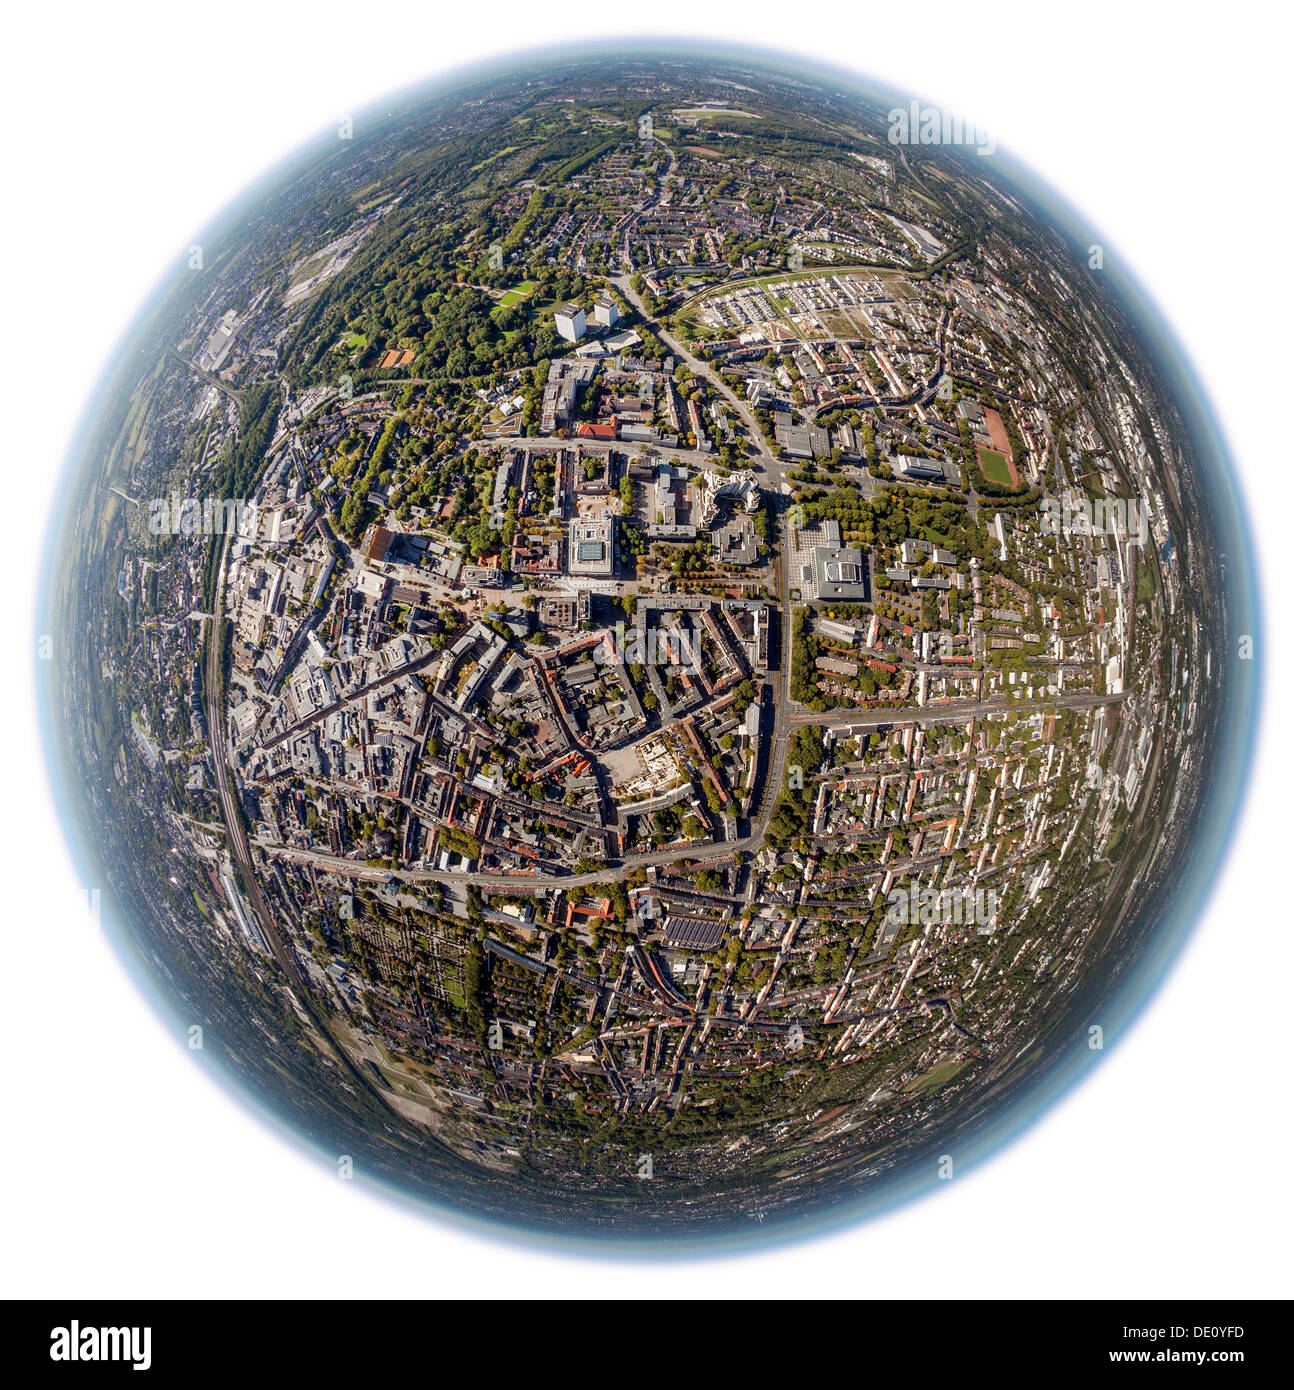 Aerial view, shot with a fisheye lens, city centre of Gelsenkirchen, Ruhr area, North Rhine-Westphalia - Stock Image